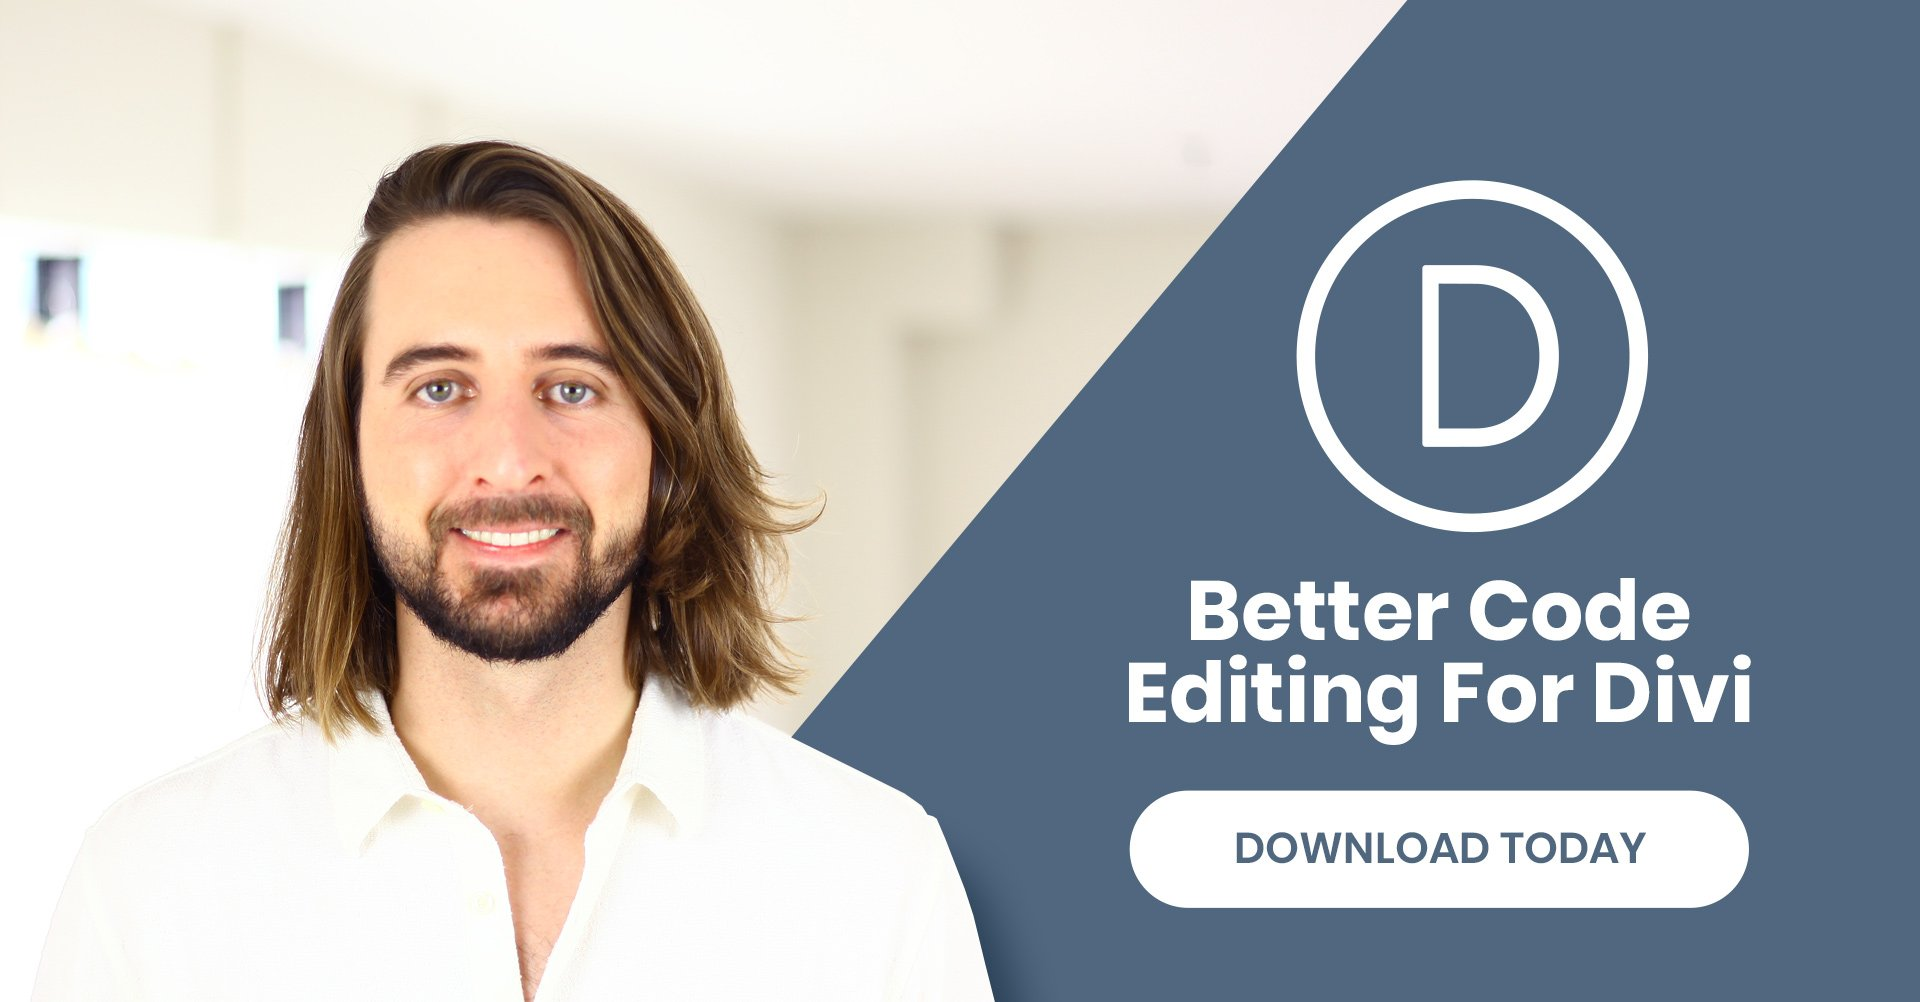 Developers Rejoice! Introducing Better Code Editing For Divi